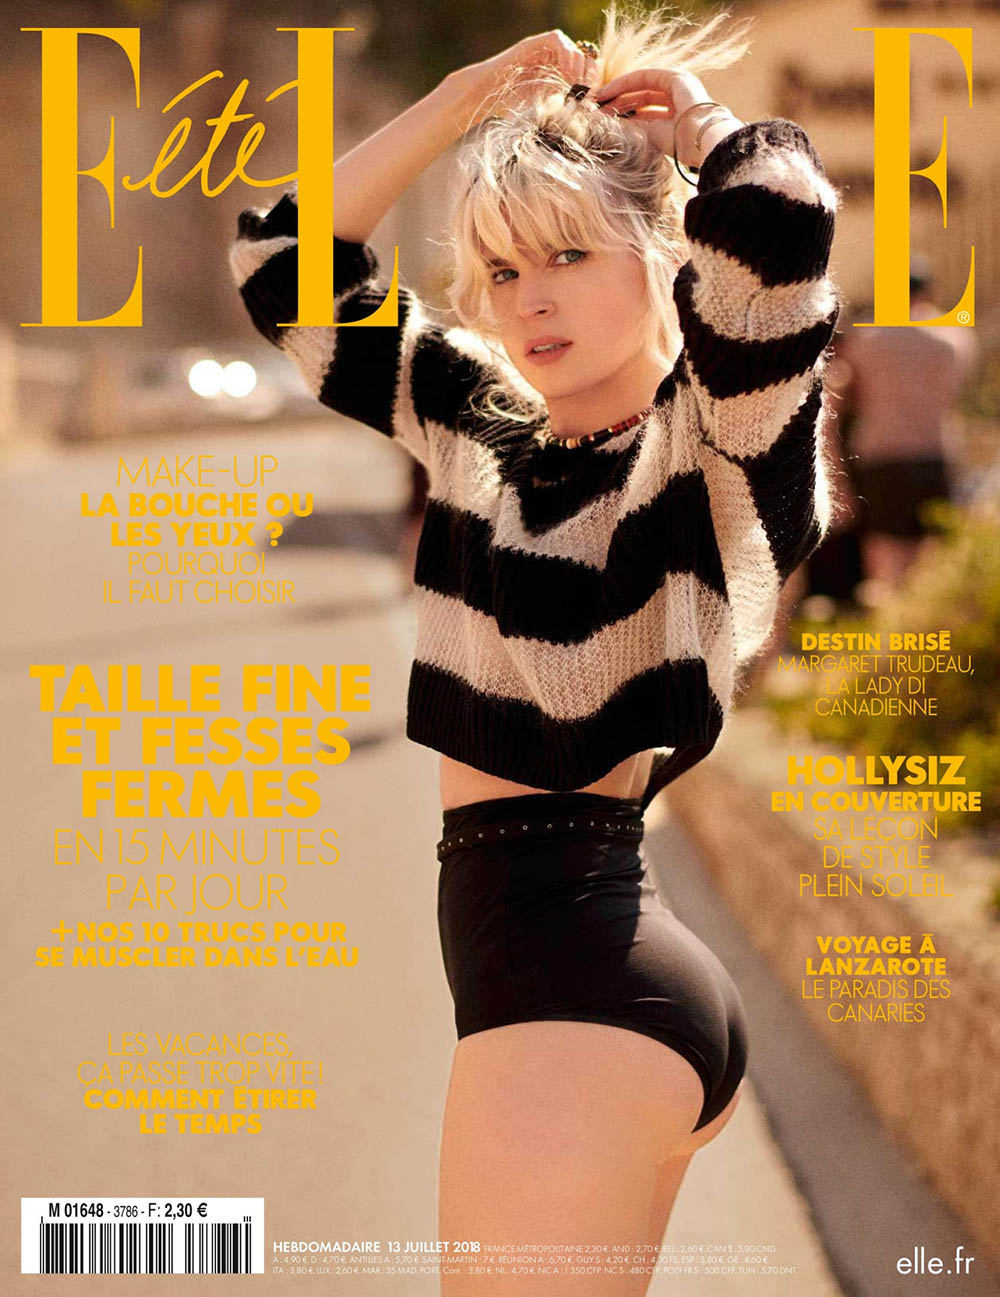 Hollysiz covers Elle France July 13th, 2018 by Sam Hendel